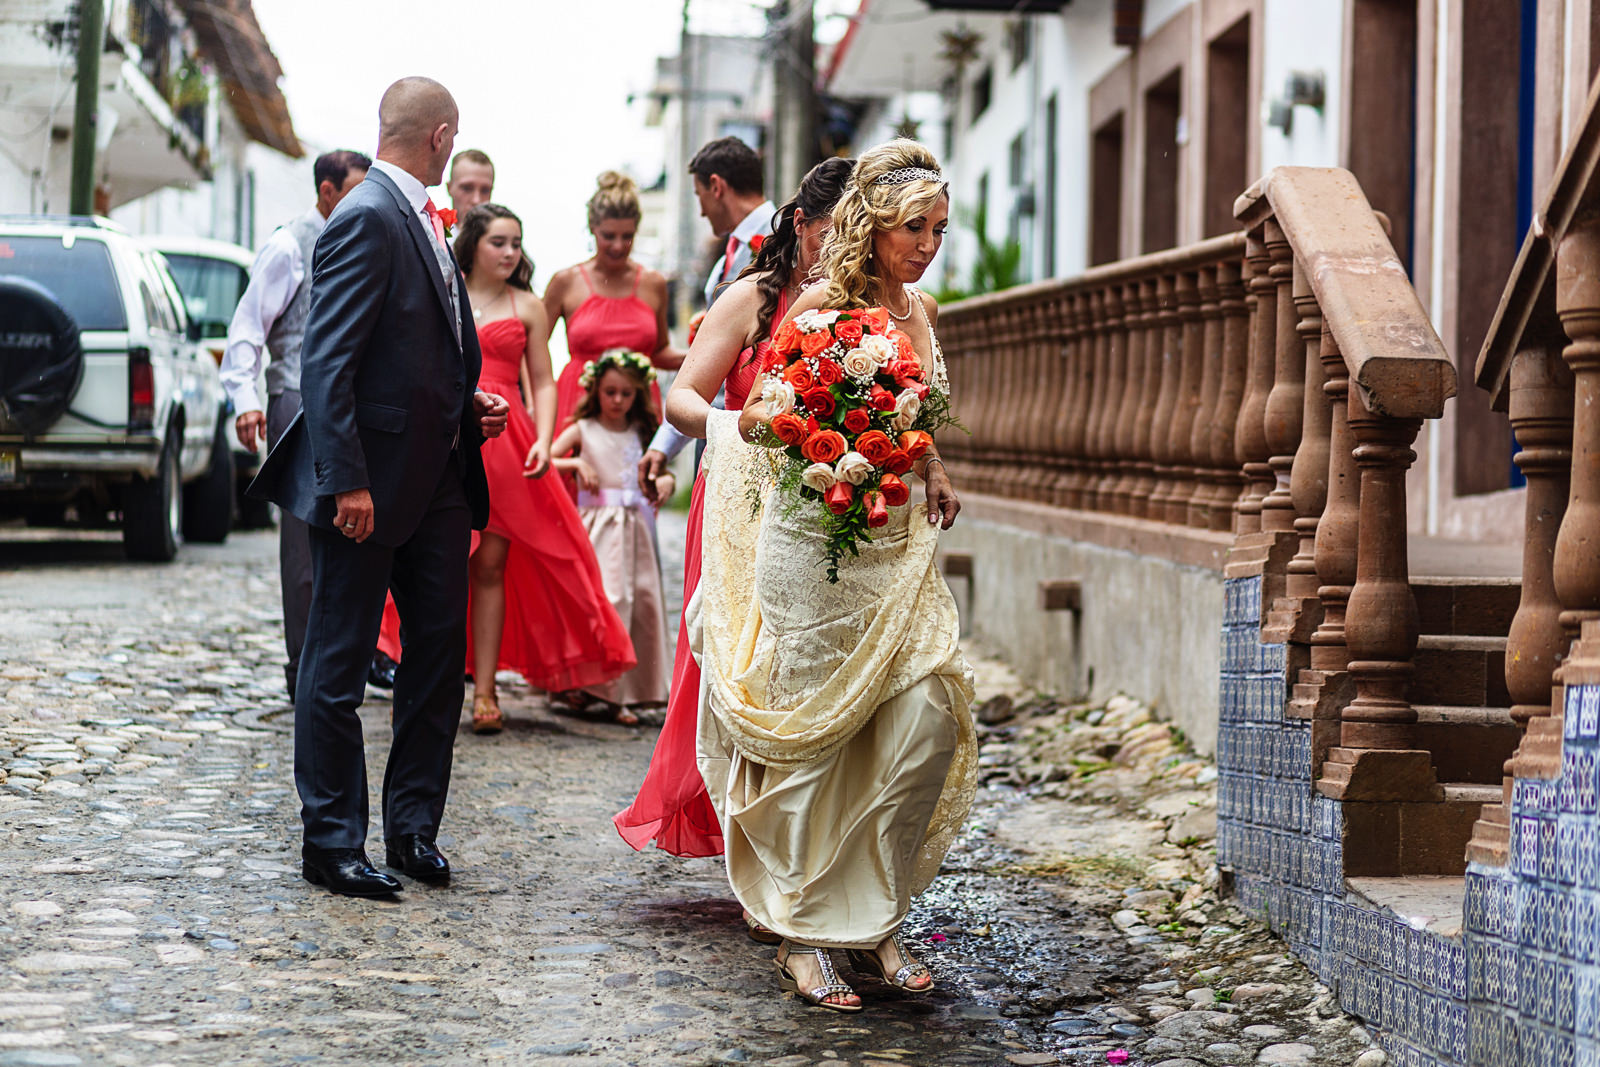 Bridal party walks in the streets of mexico after the ceremony to grab a cocktail